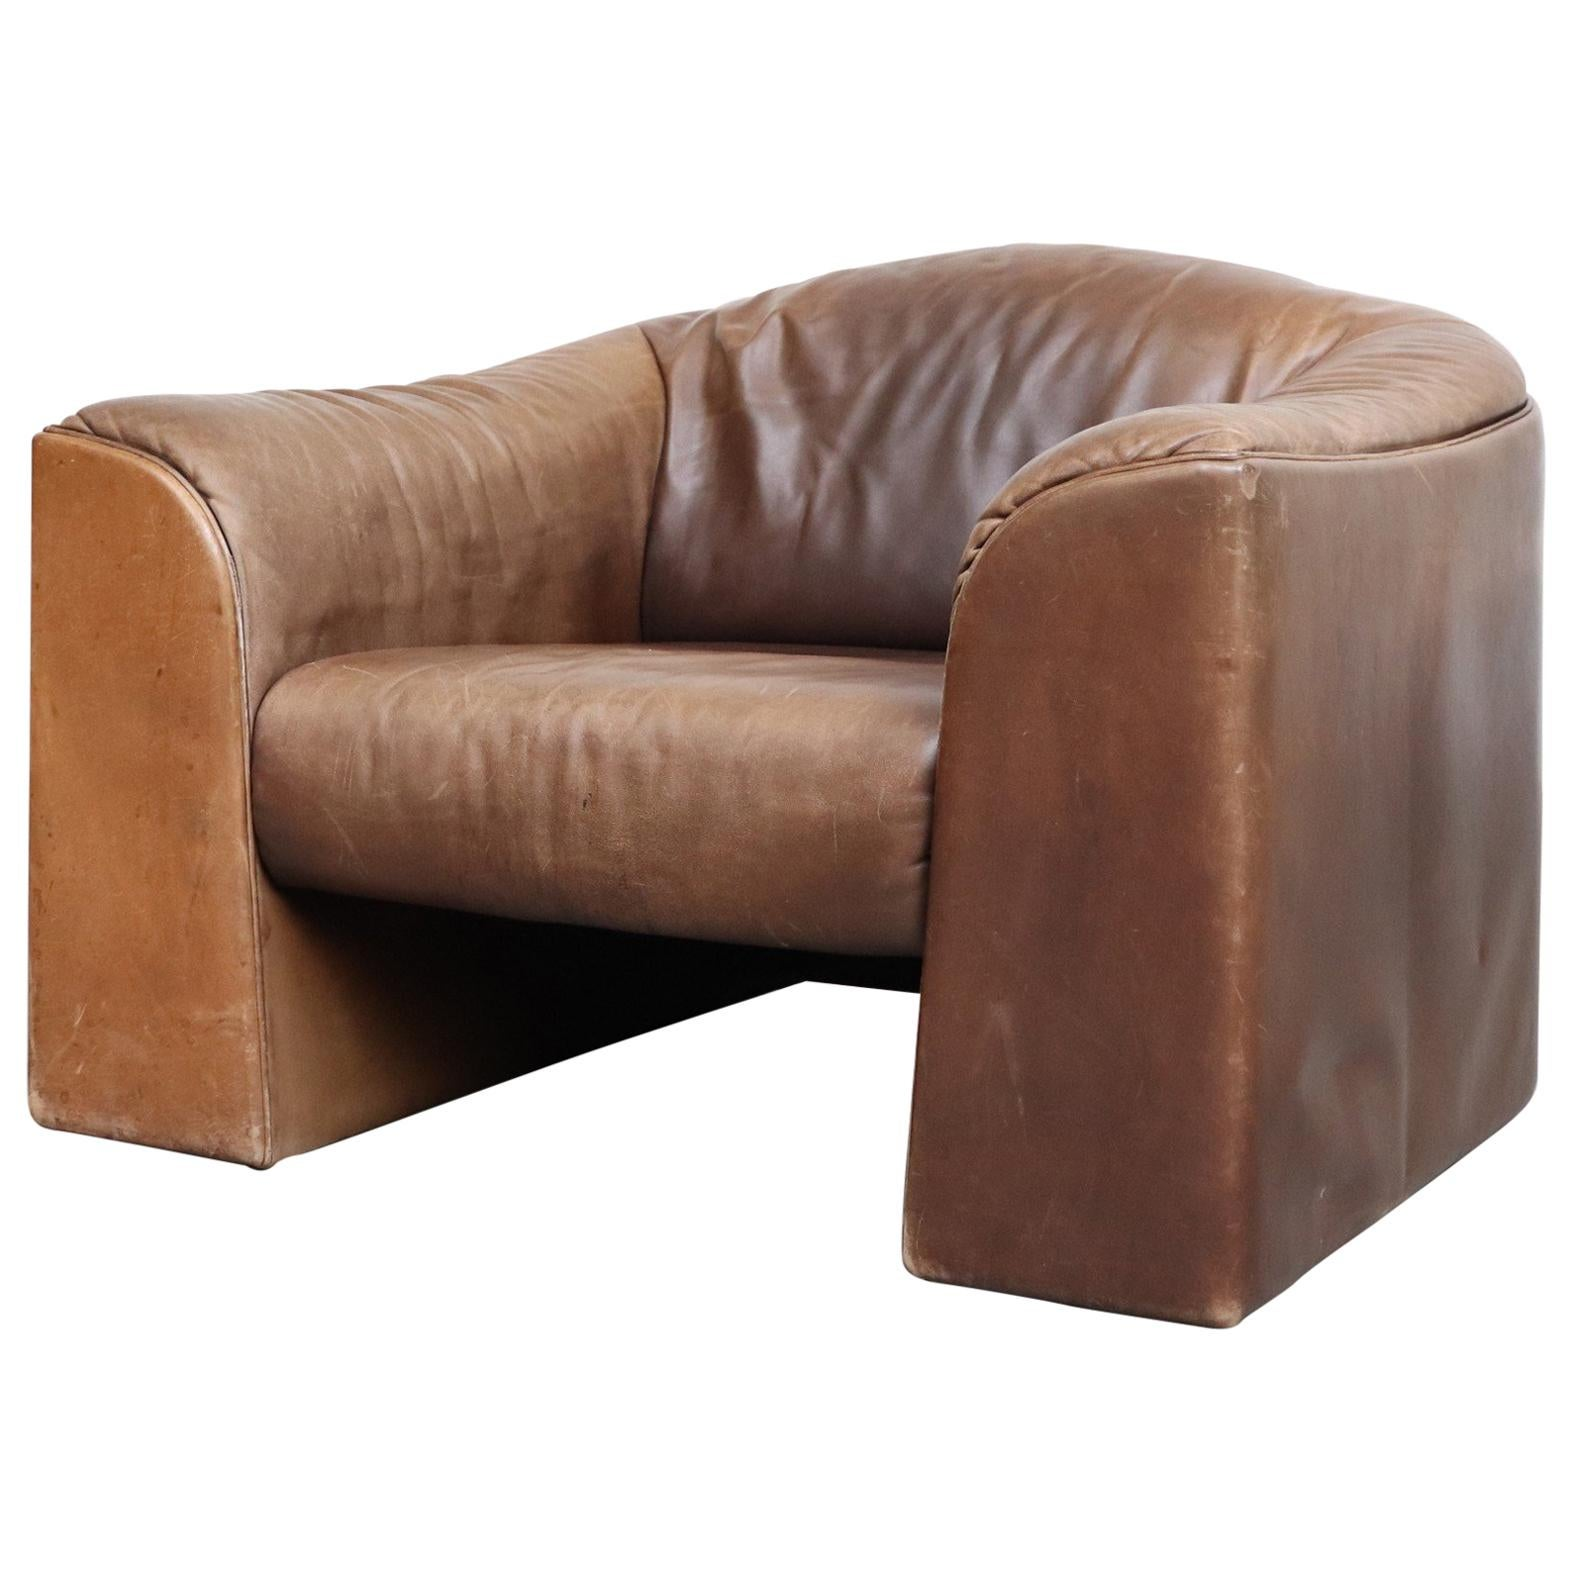 Leather Lounge Walter Knoll Leather Lounge Chair